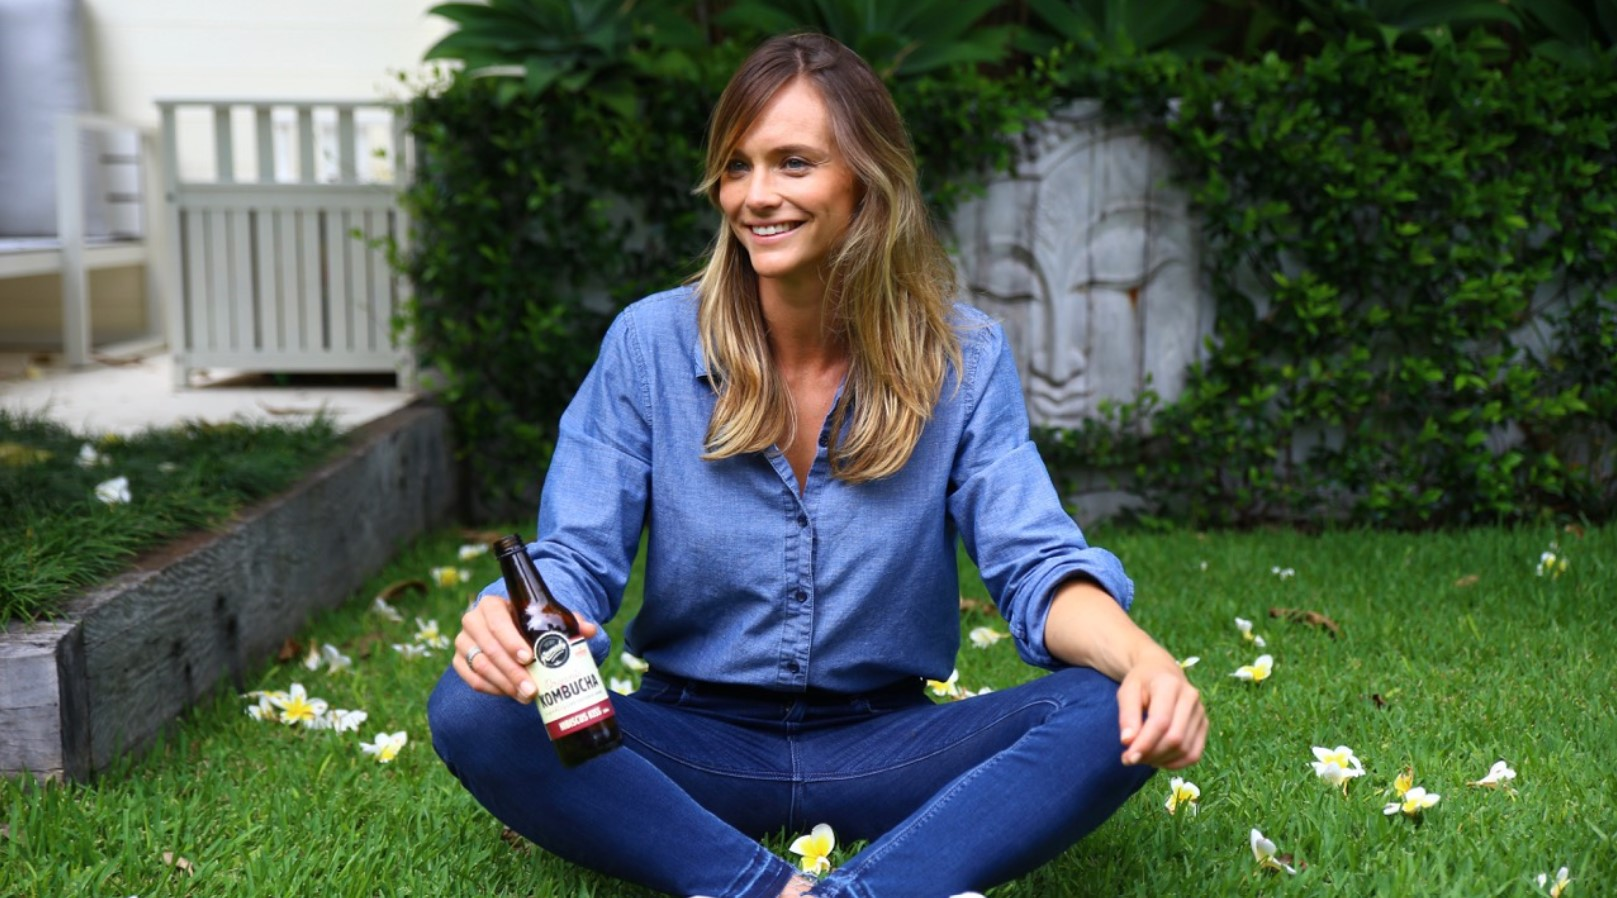 How Much Kombucha Should I Drink? And How Often?